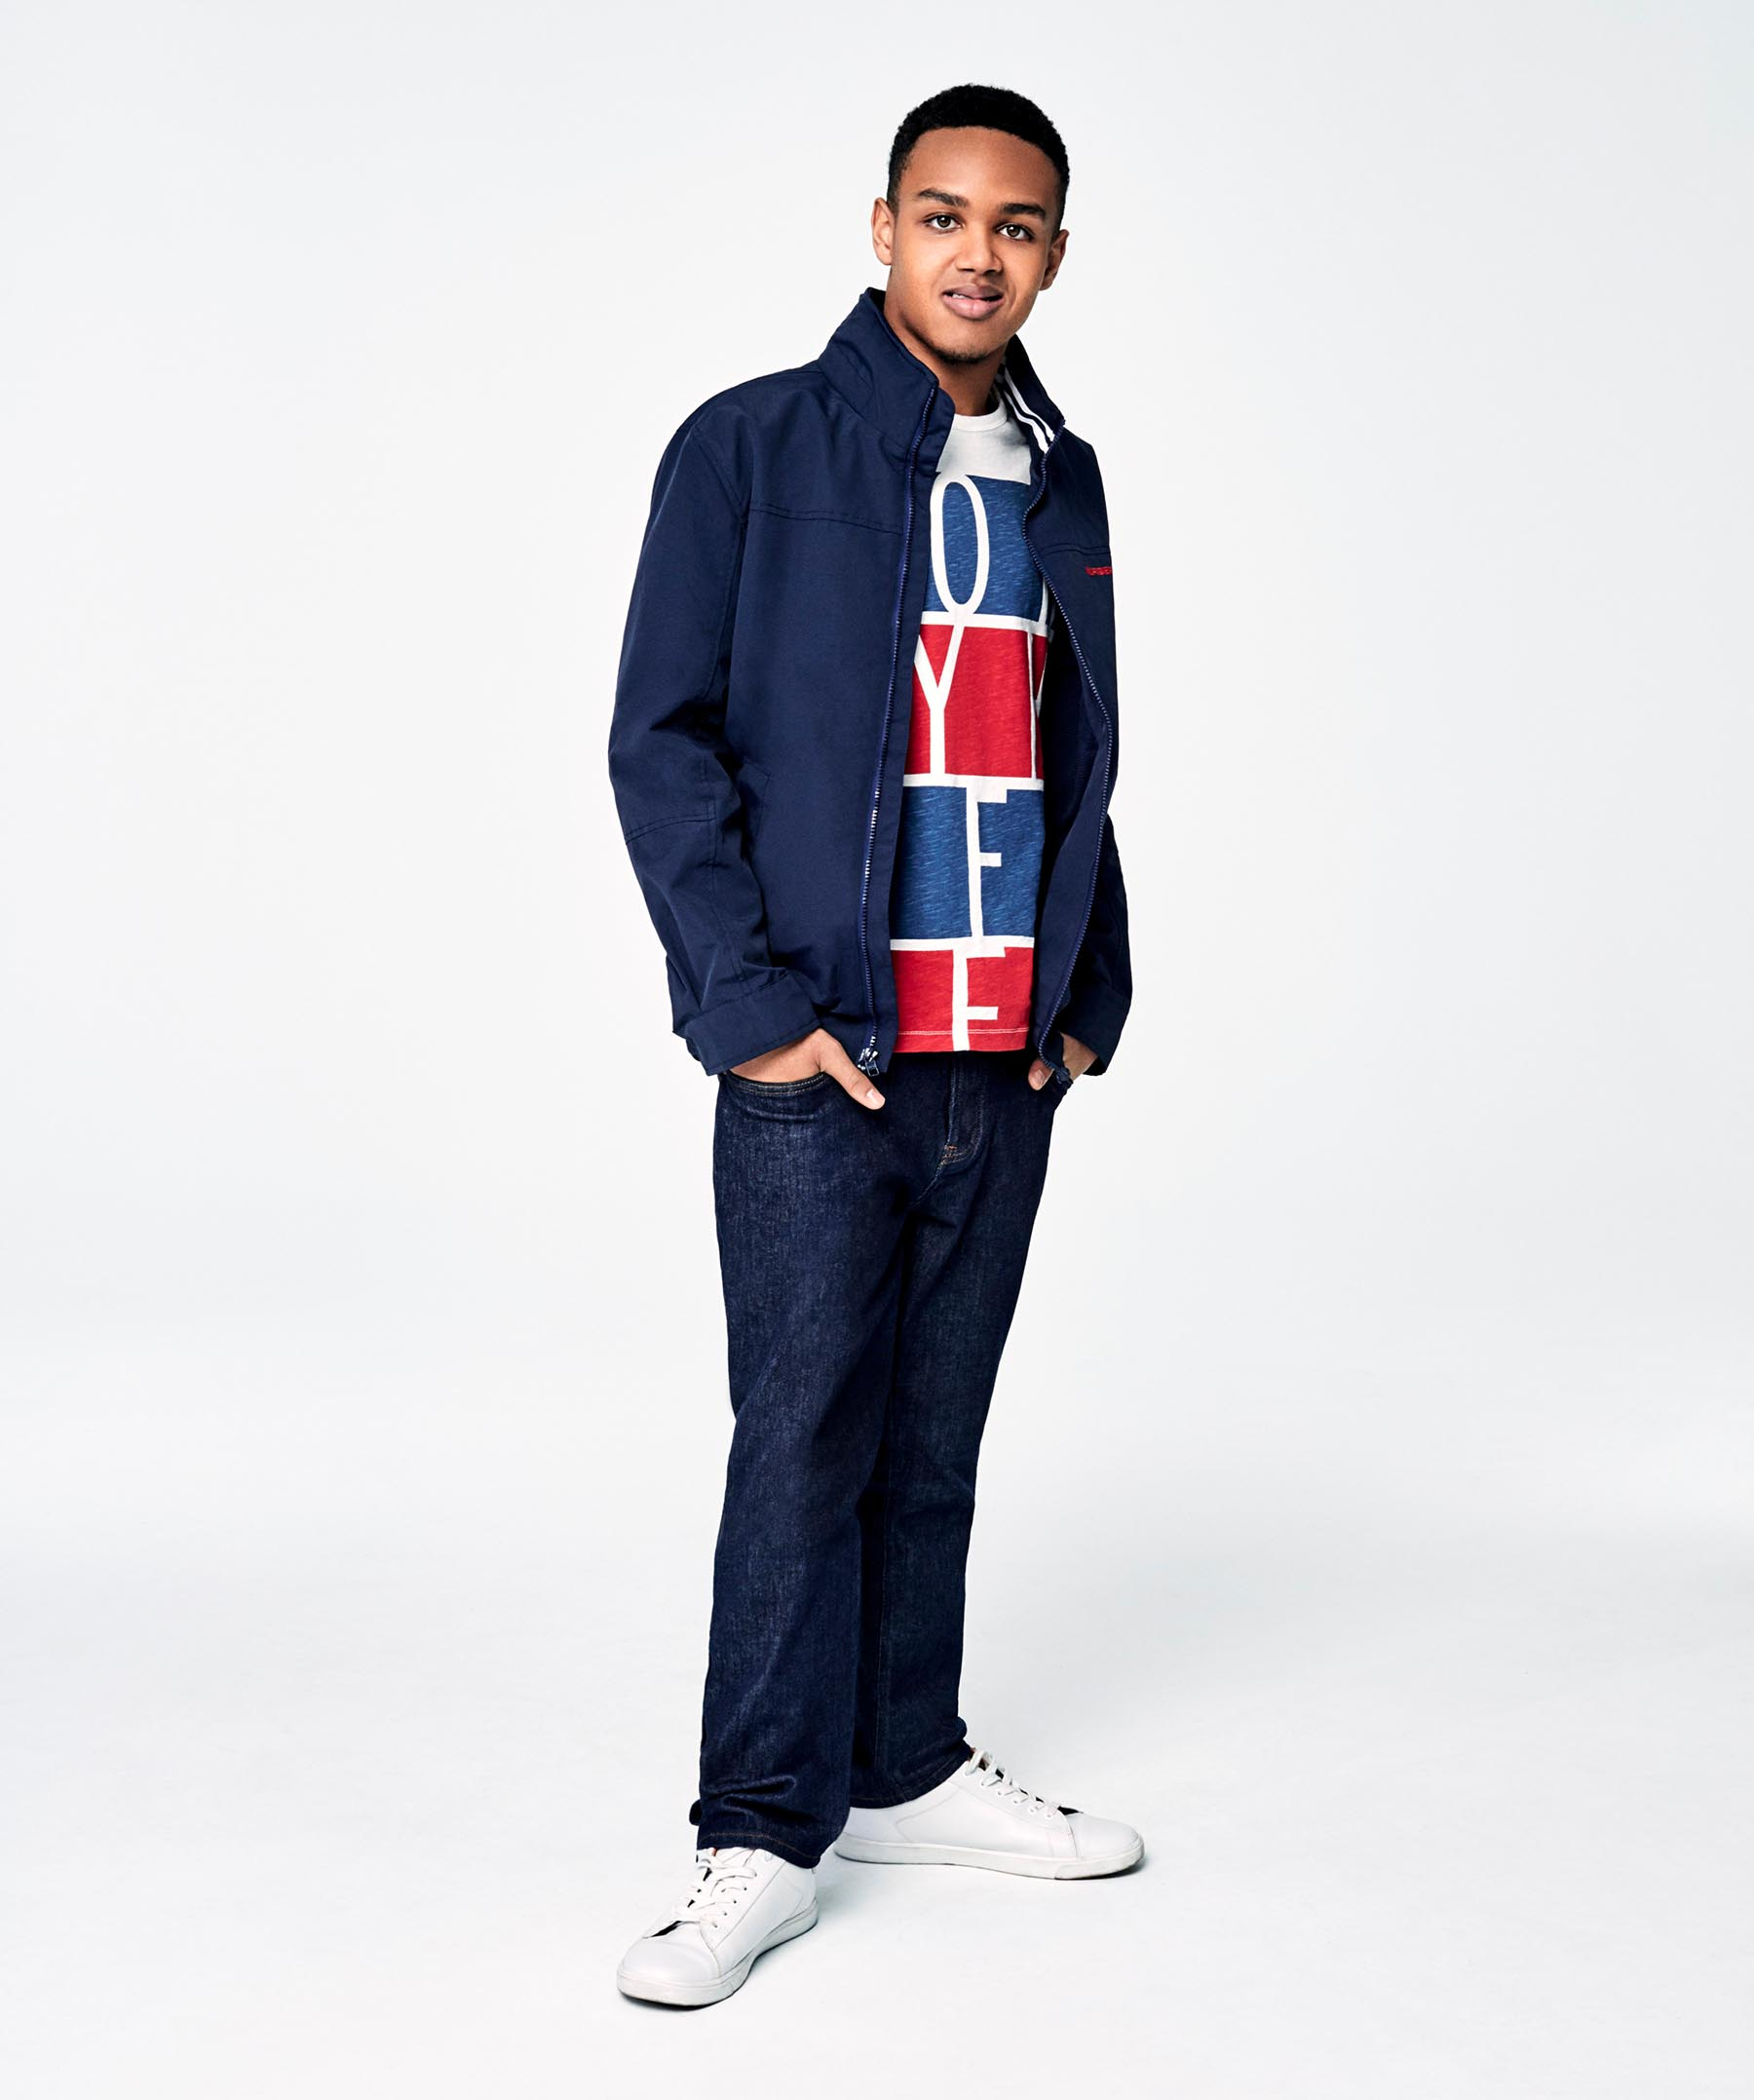 Tommy Hilfiger Adaptive Spring 2018 Campaign